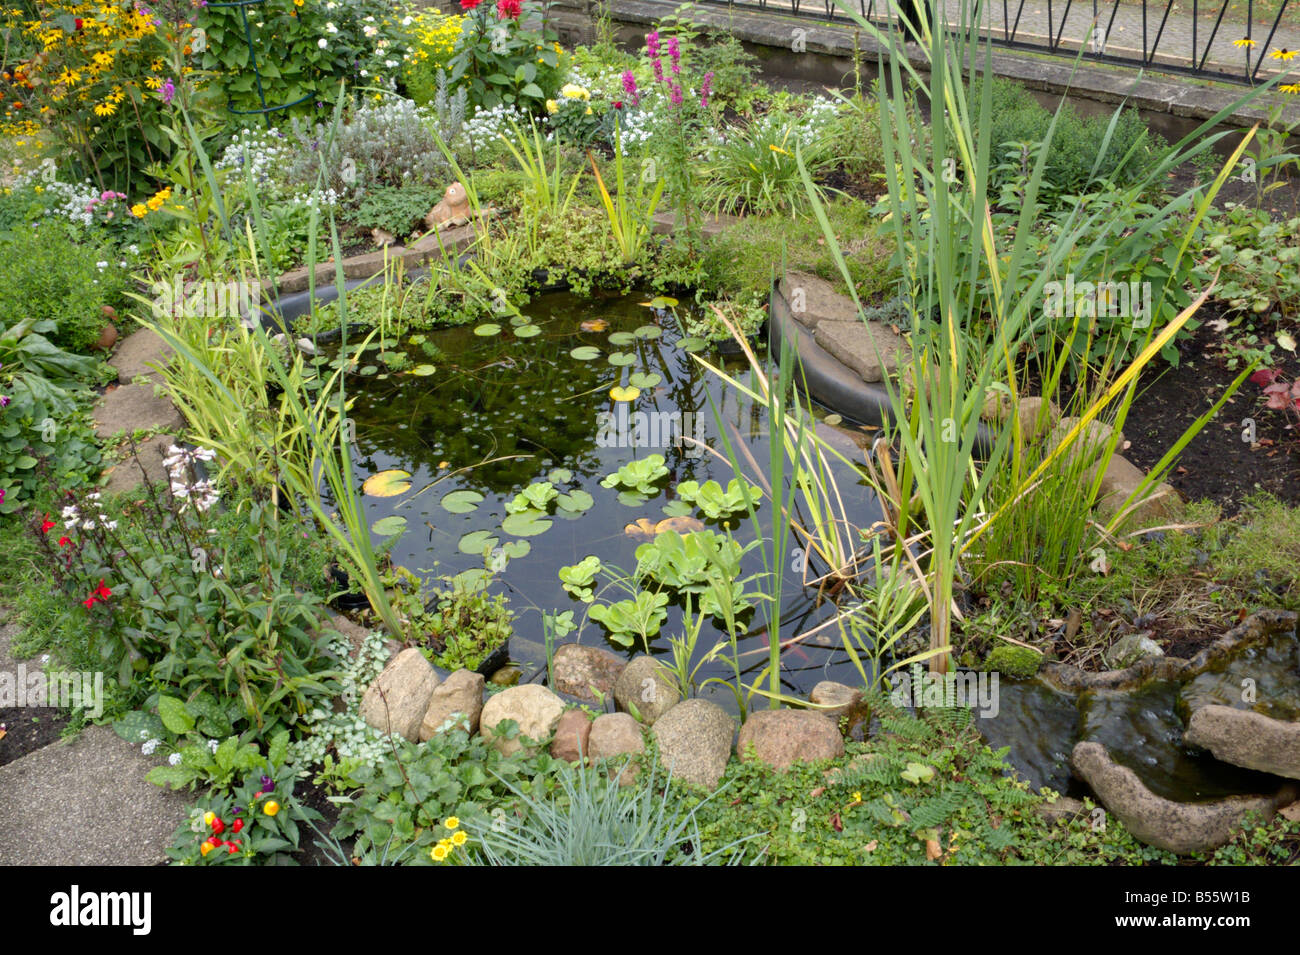 Small Garden Pond Stock Photo Royalty Free Image